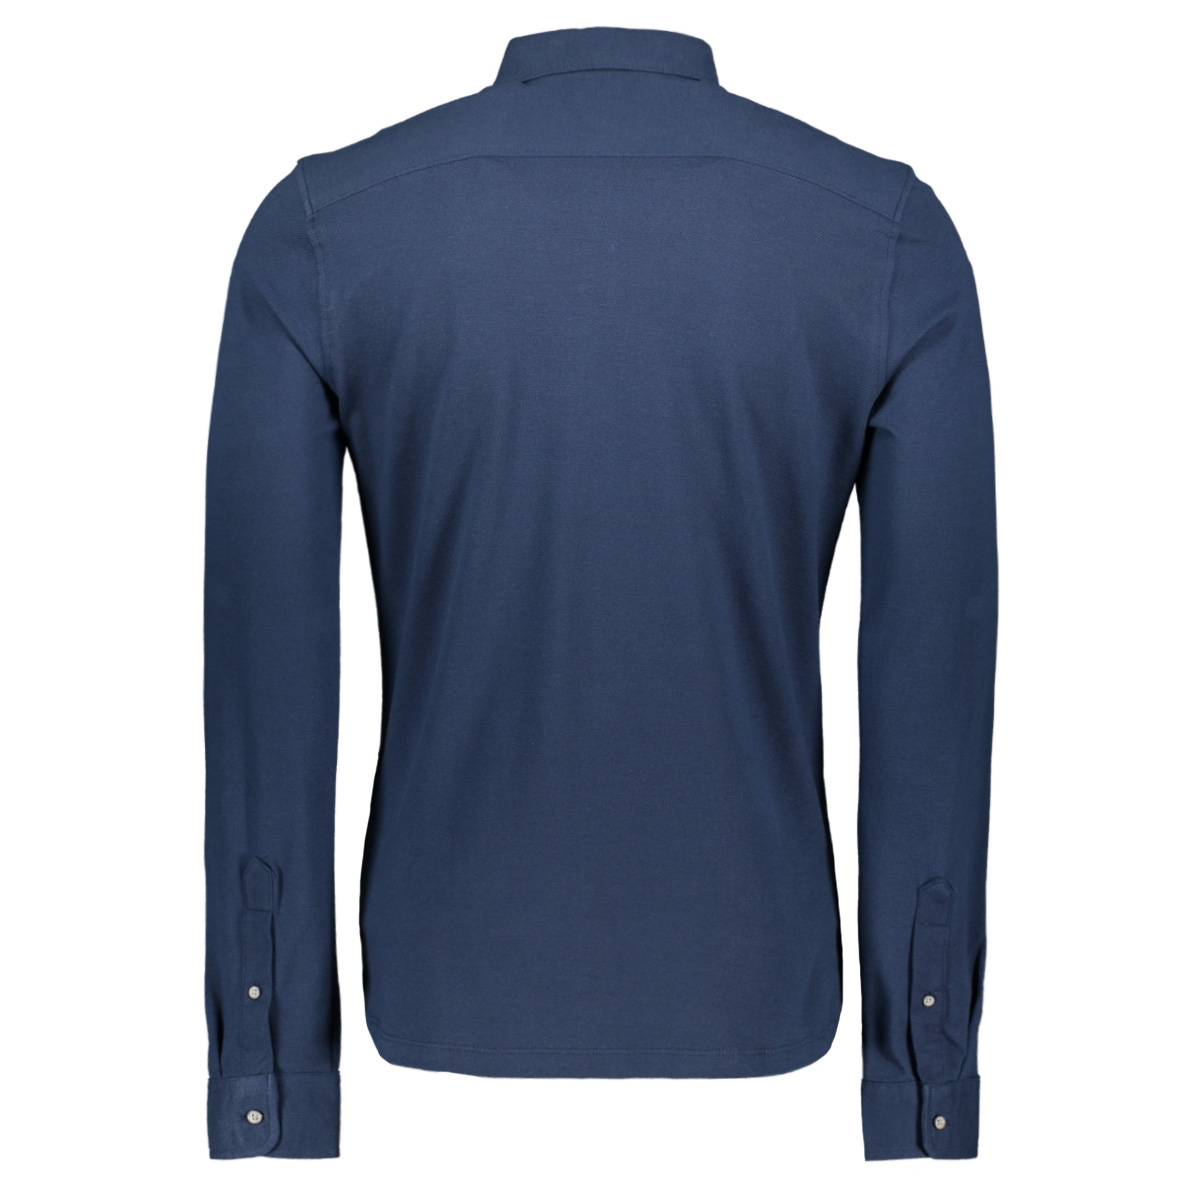 onscuton ls knitted melange shirt r 22009904 only & sons overhemd dress blues